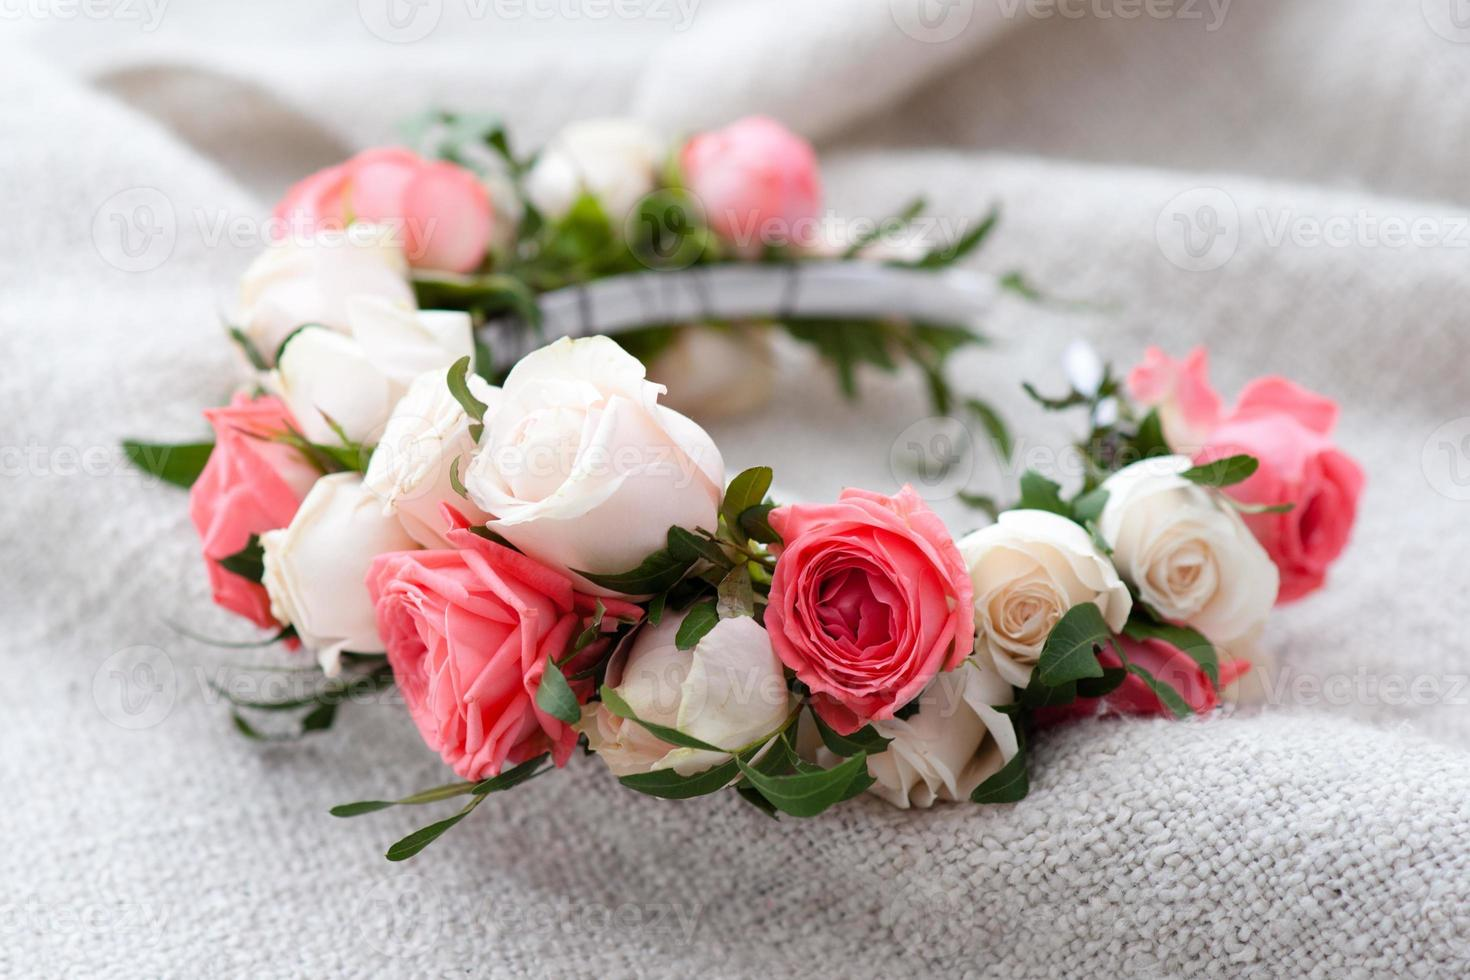 tiara of artificial roses on wooden background. photo